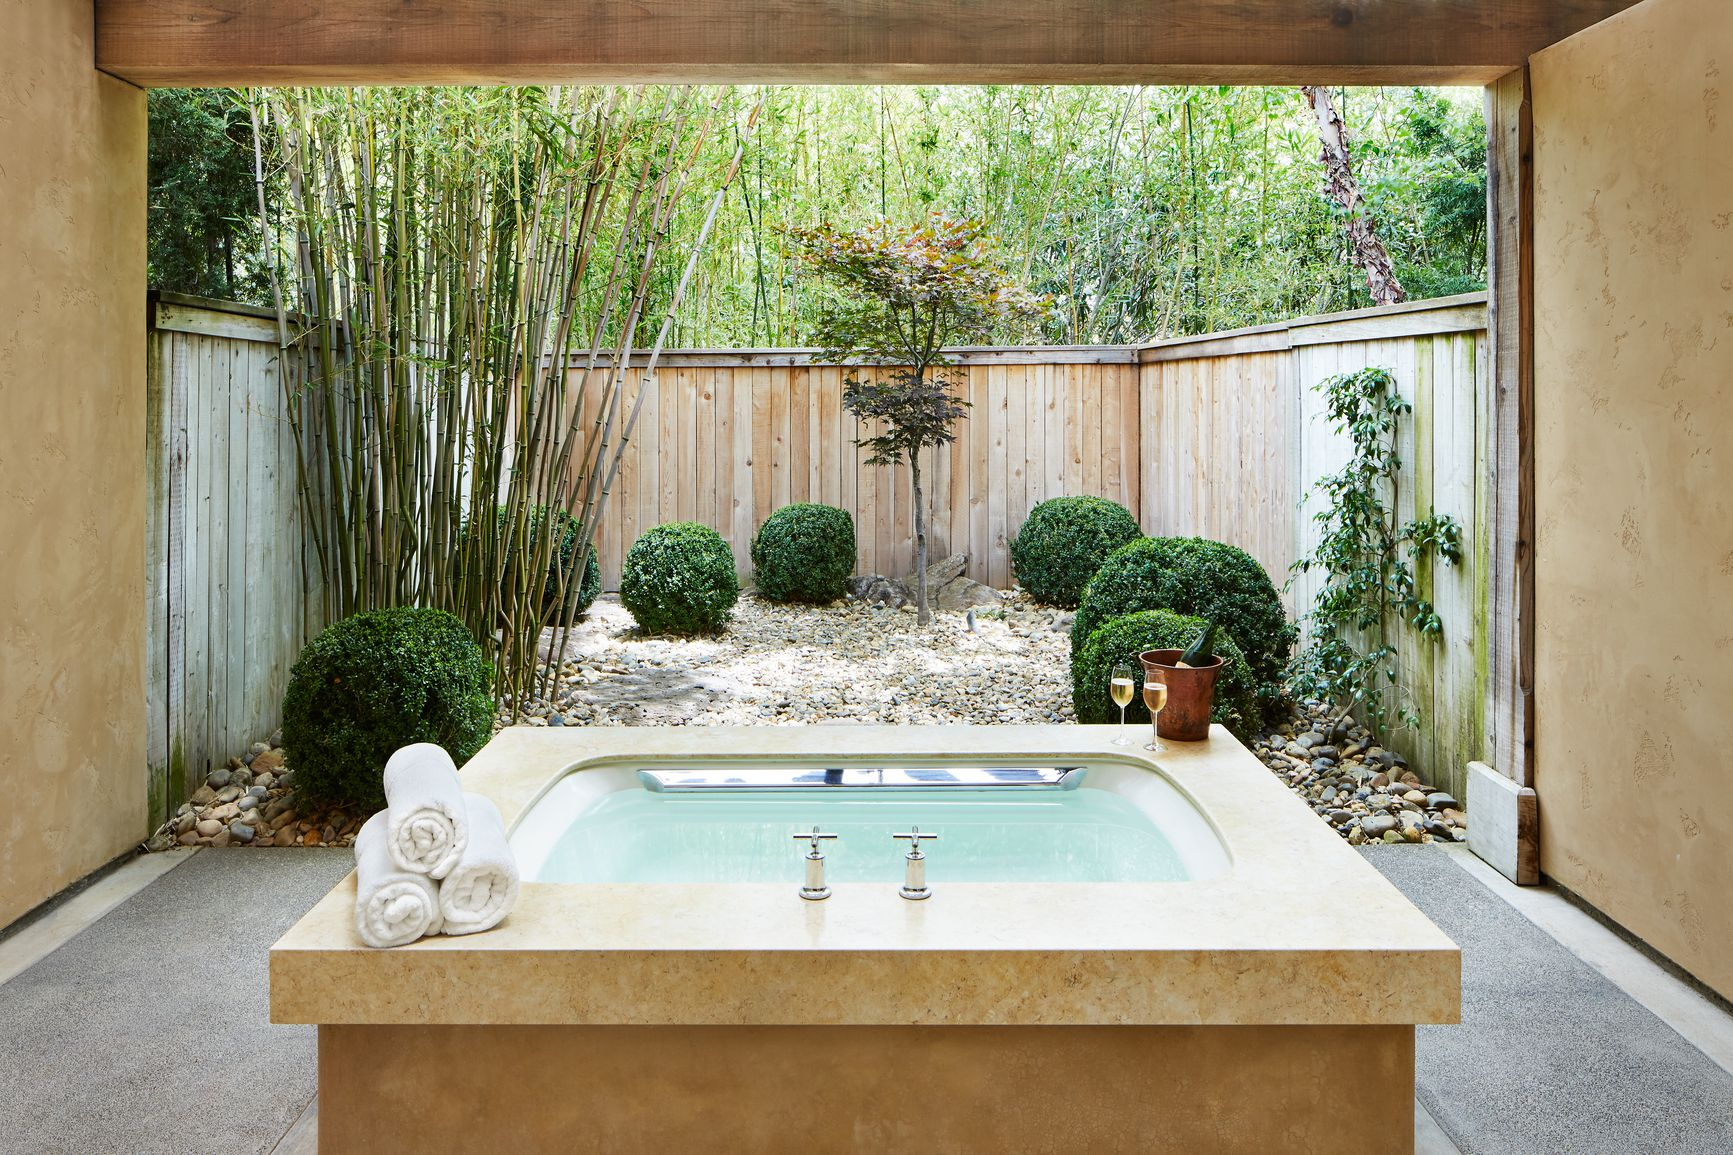 Where To Install A Hot Tub